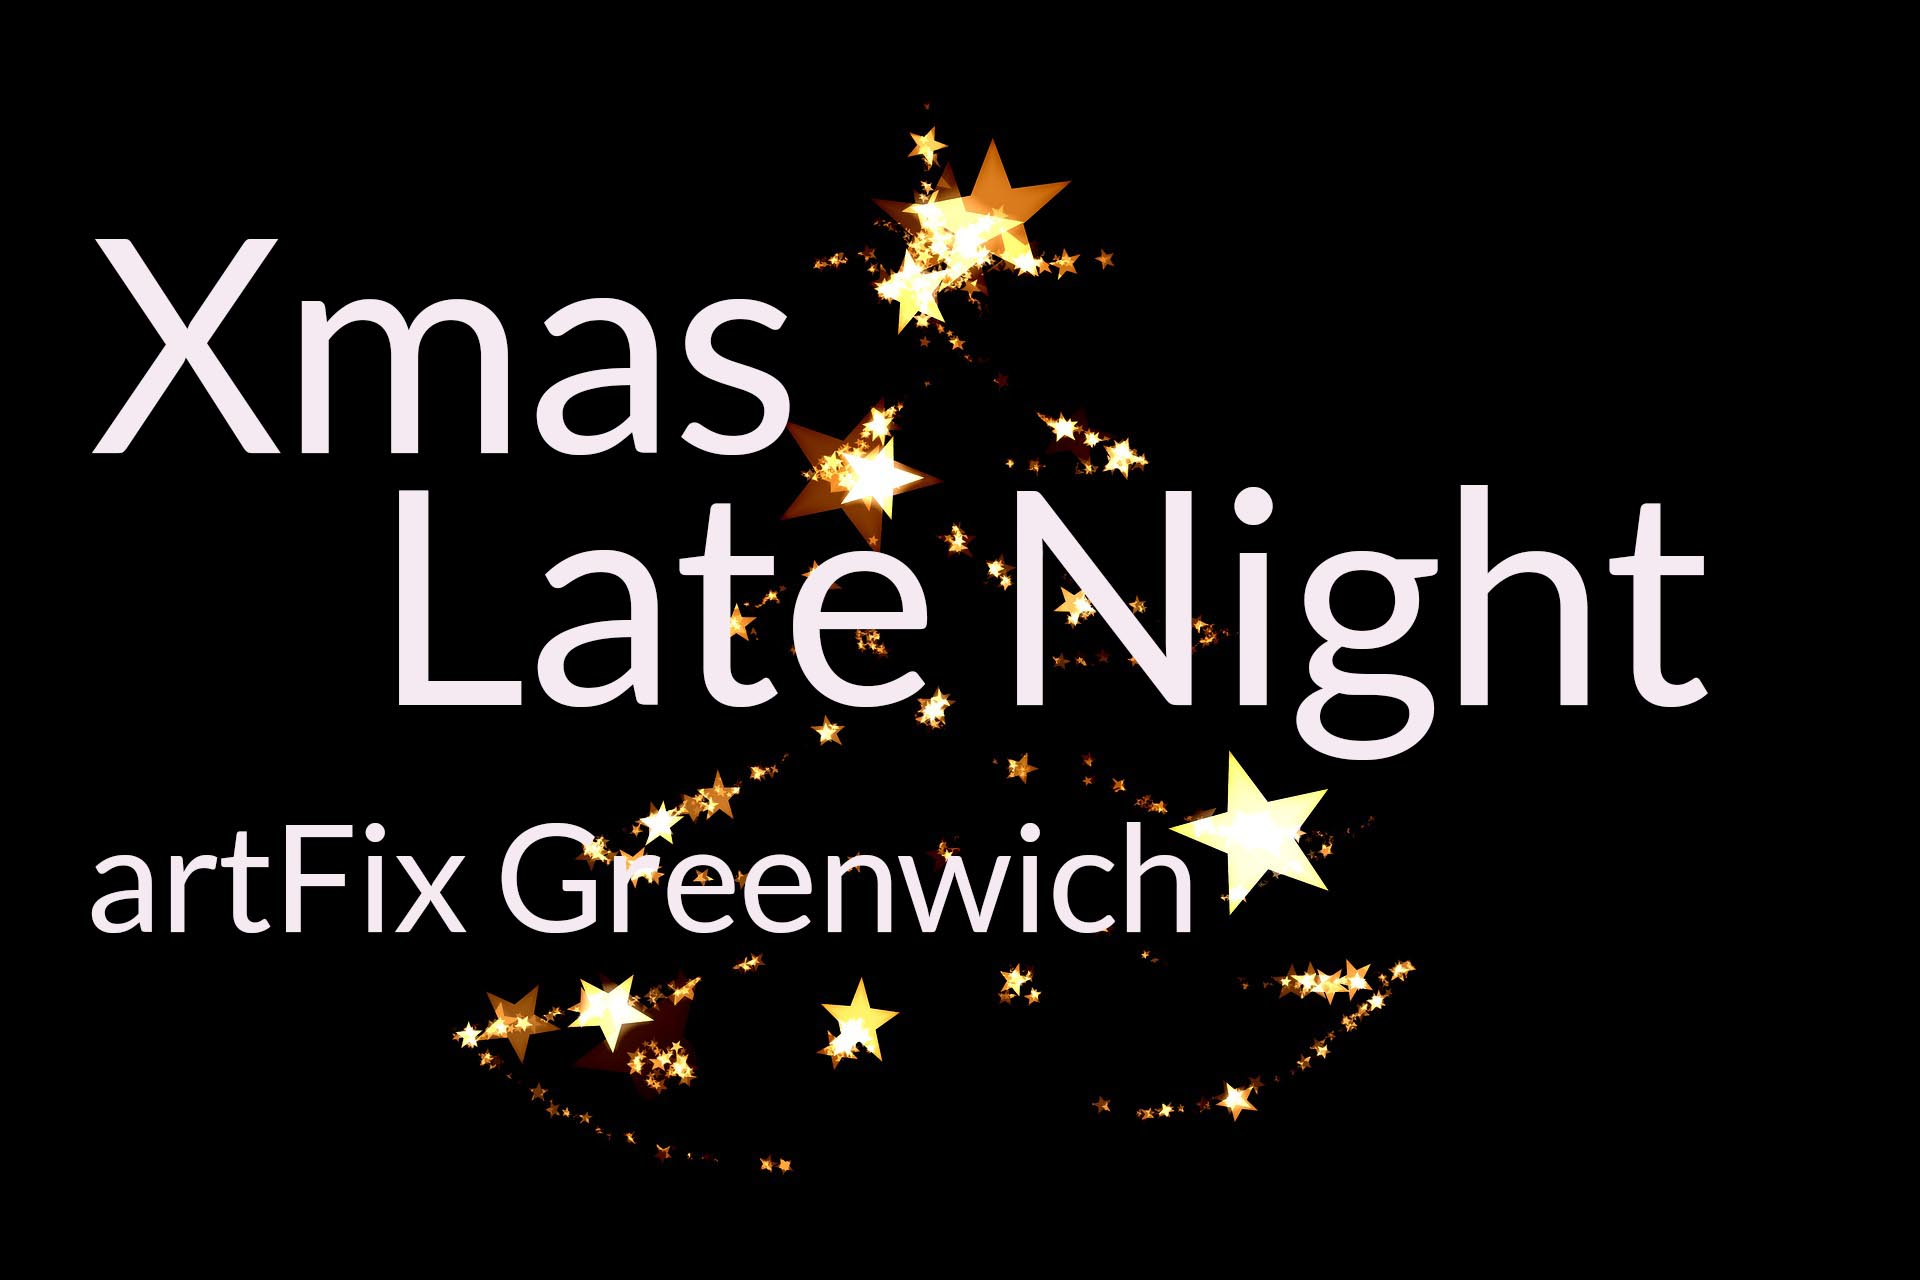 Xmas Late Night with artFix Greenwich